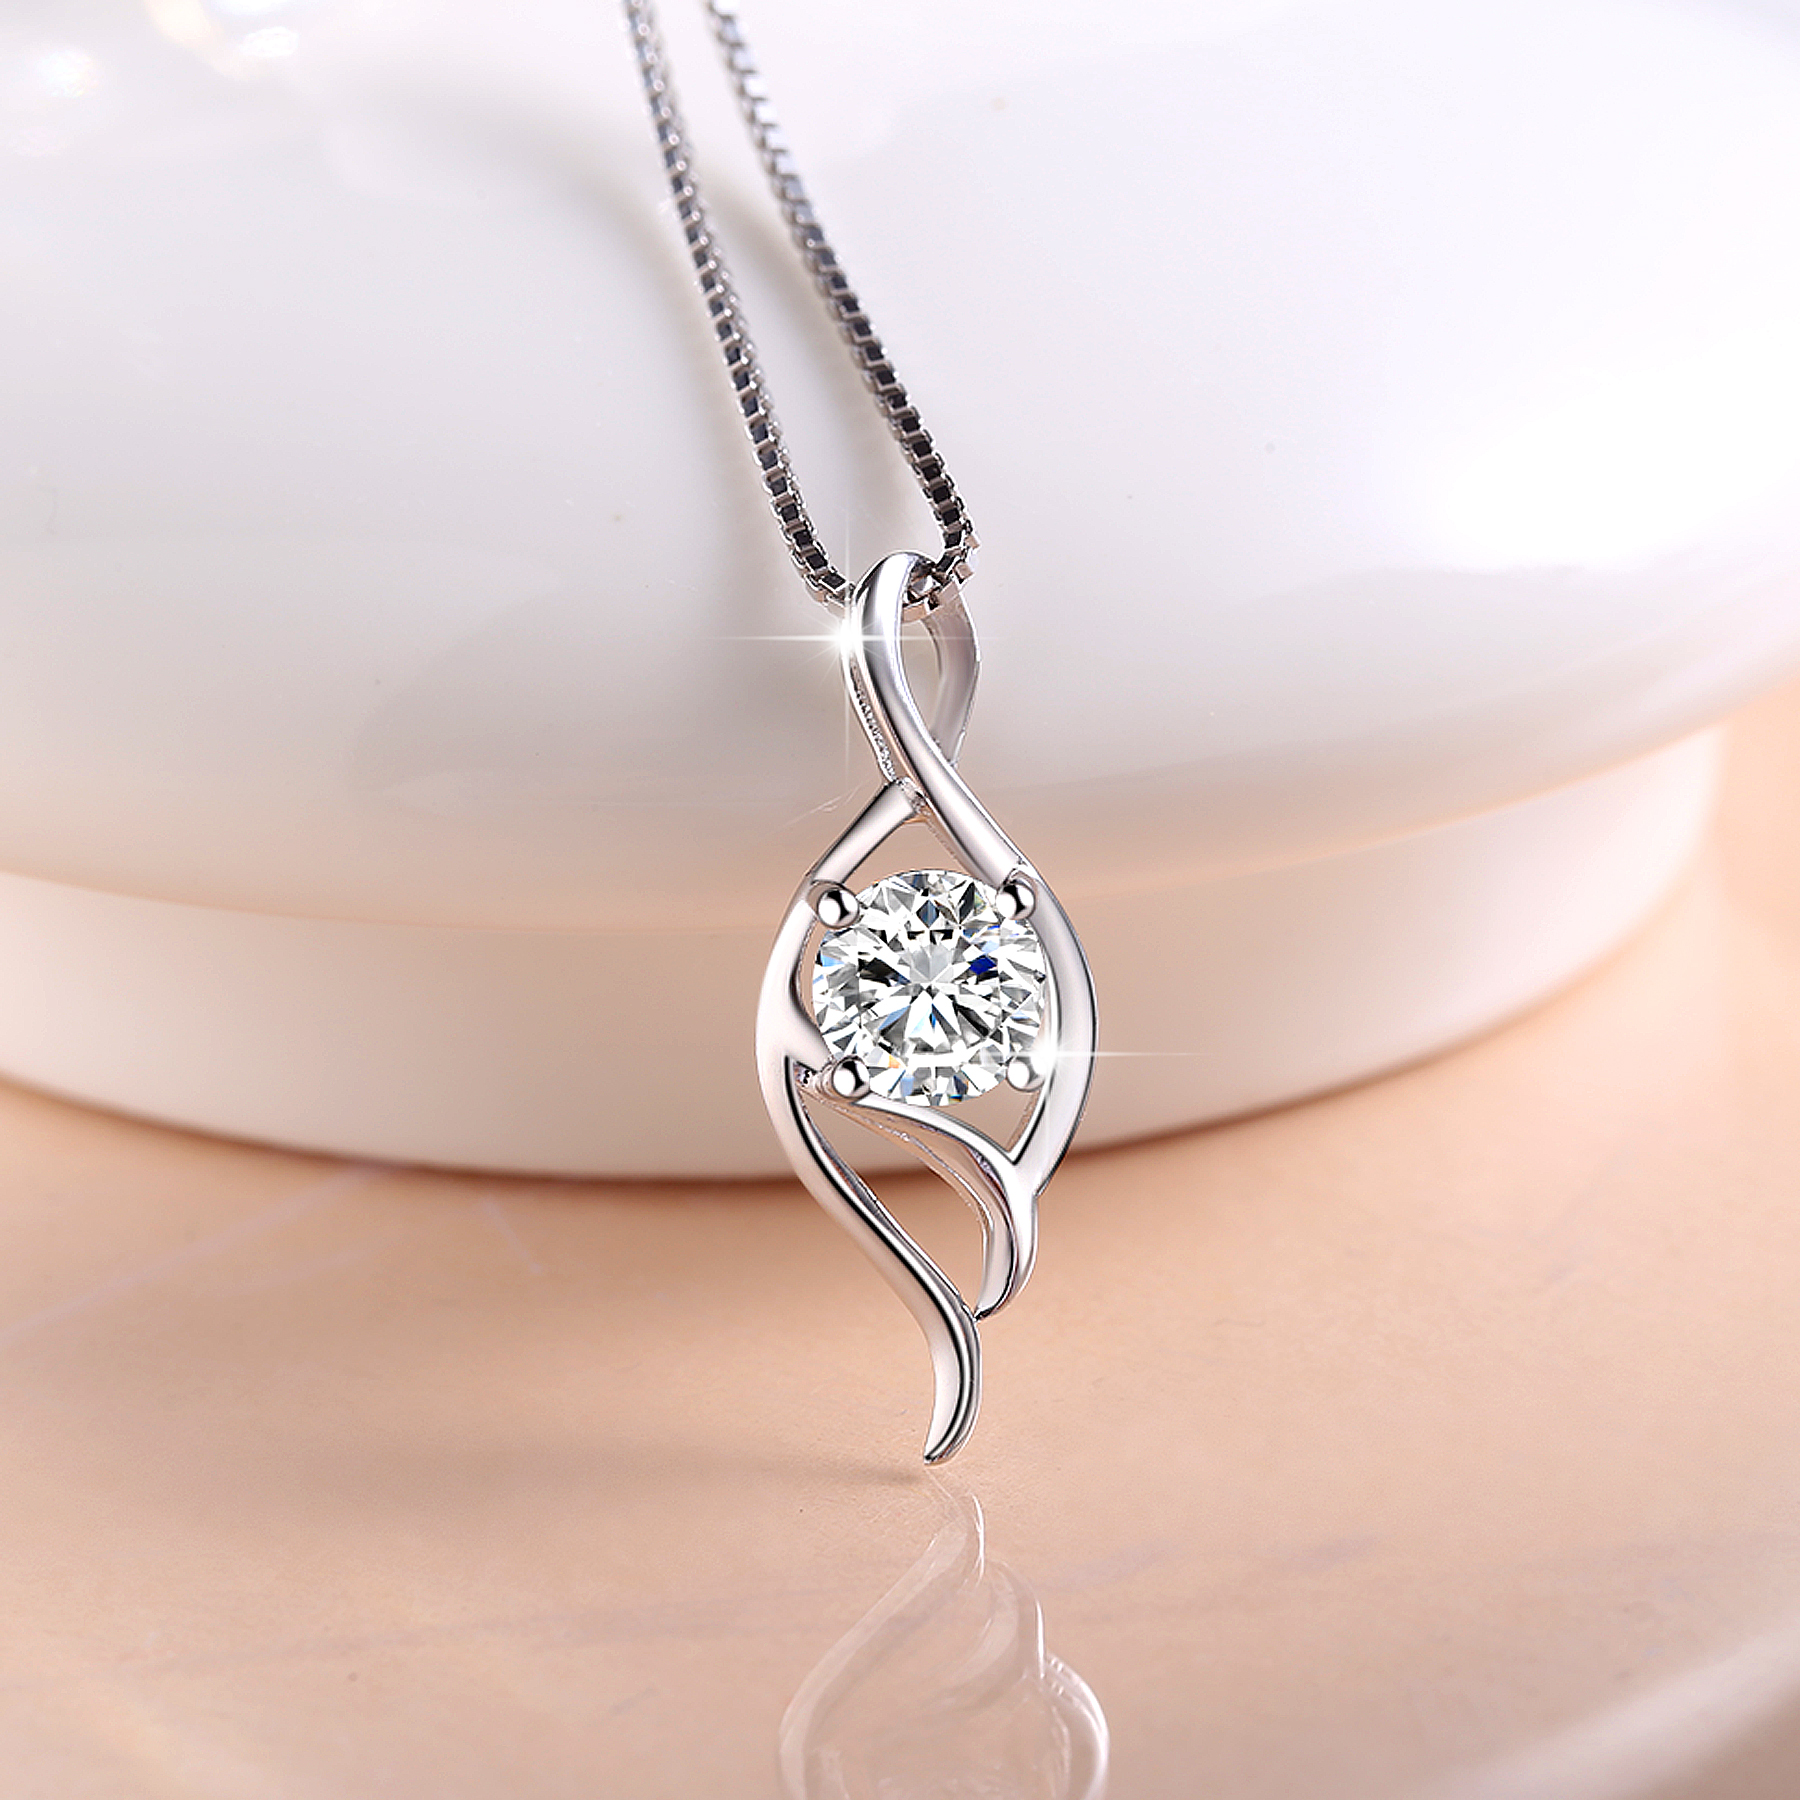 Treasure with flower s925 silver necklace female models clavicle chain pendant fashion jewelry korea simple birthday gift only love